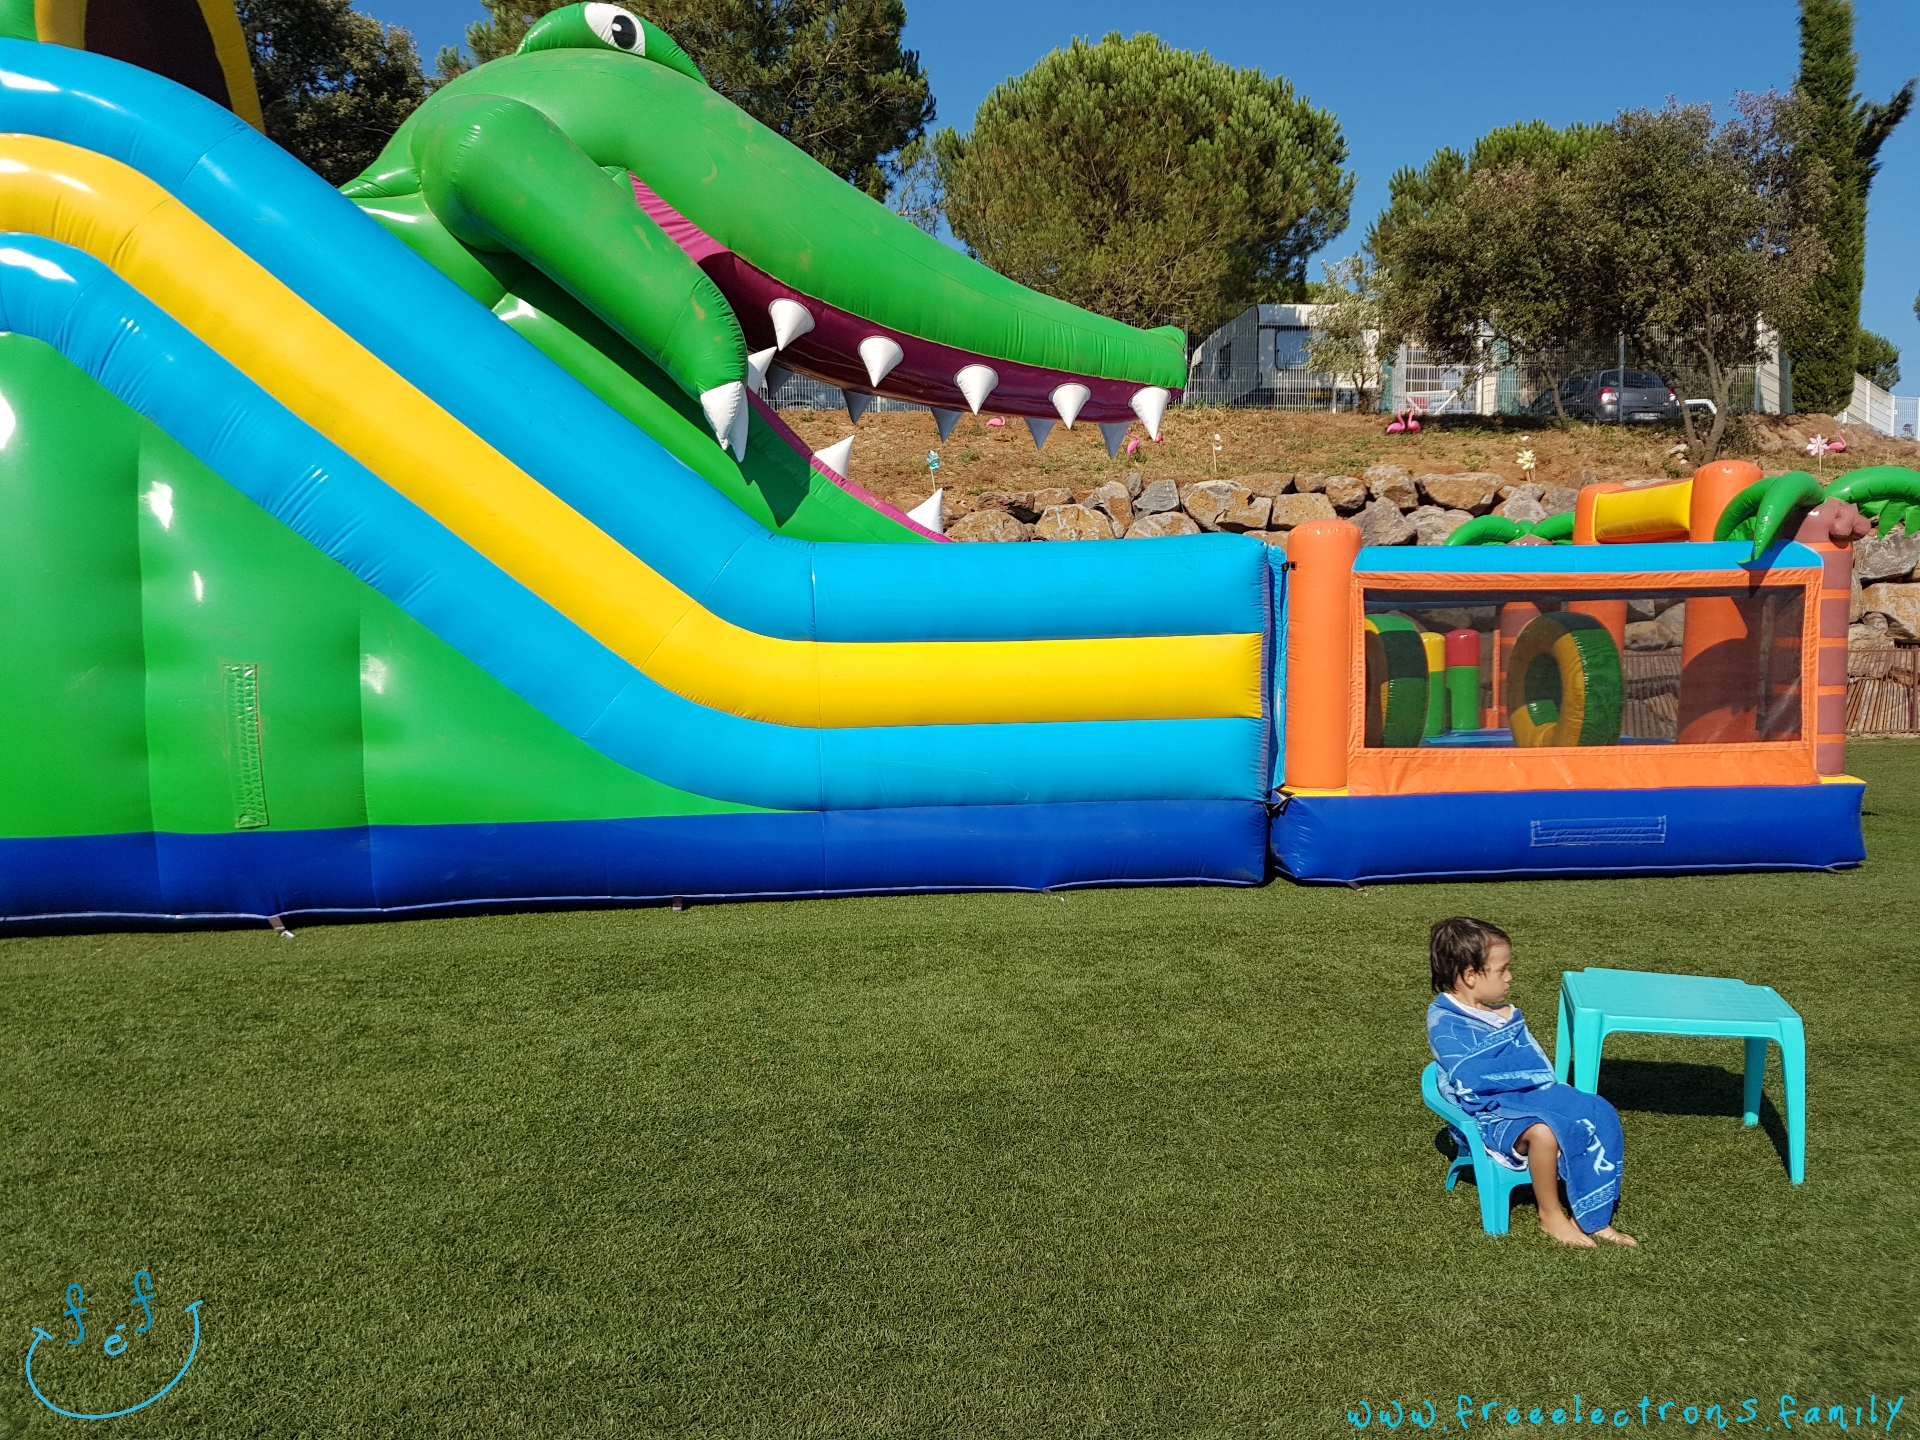 A young boy wrapped in a towel, sitting on a kids chair on green grass, next to a huge crocodile-themed, jump-and-slide,  inflatable play structure.  #FreeElectrons.Family - camping road trip Europe, Agde France.